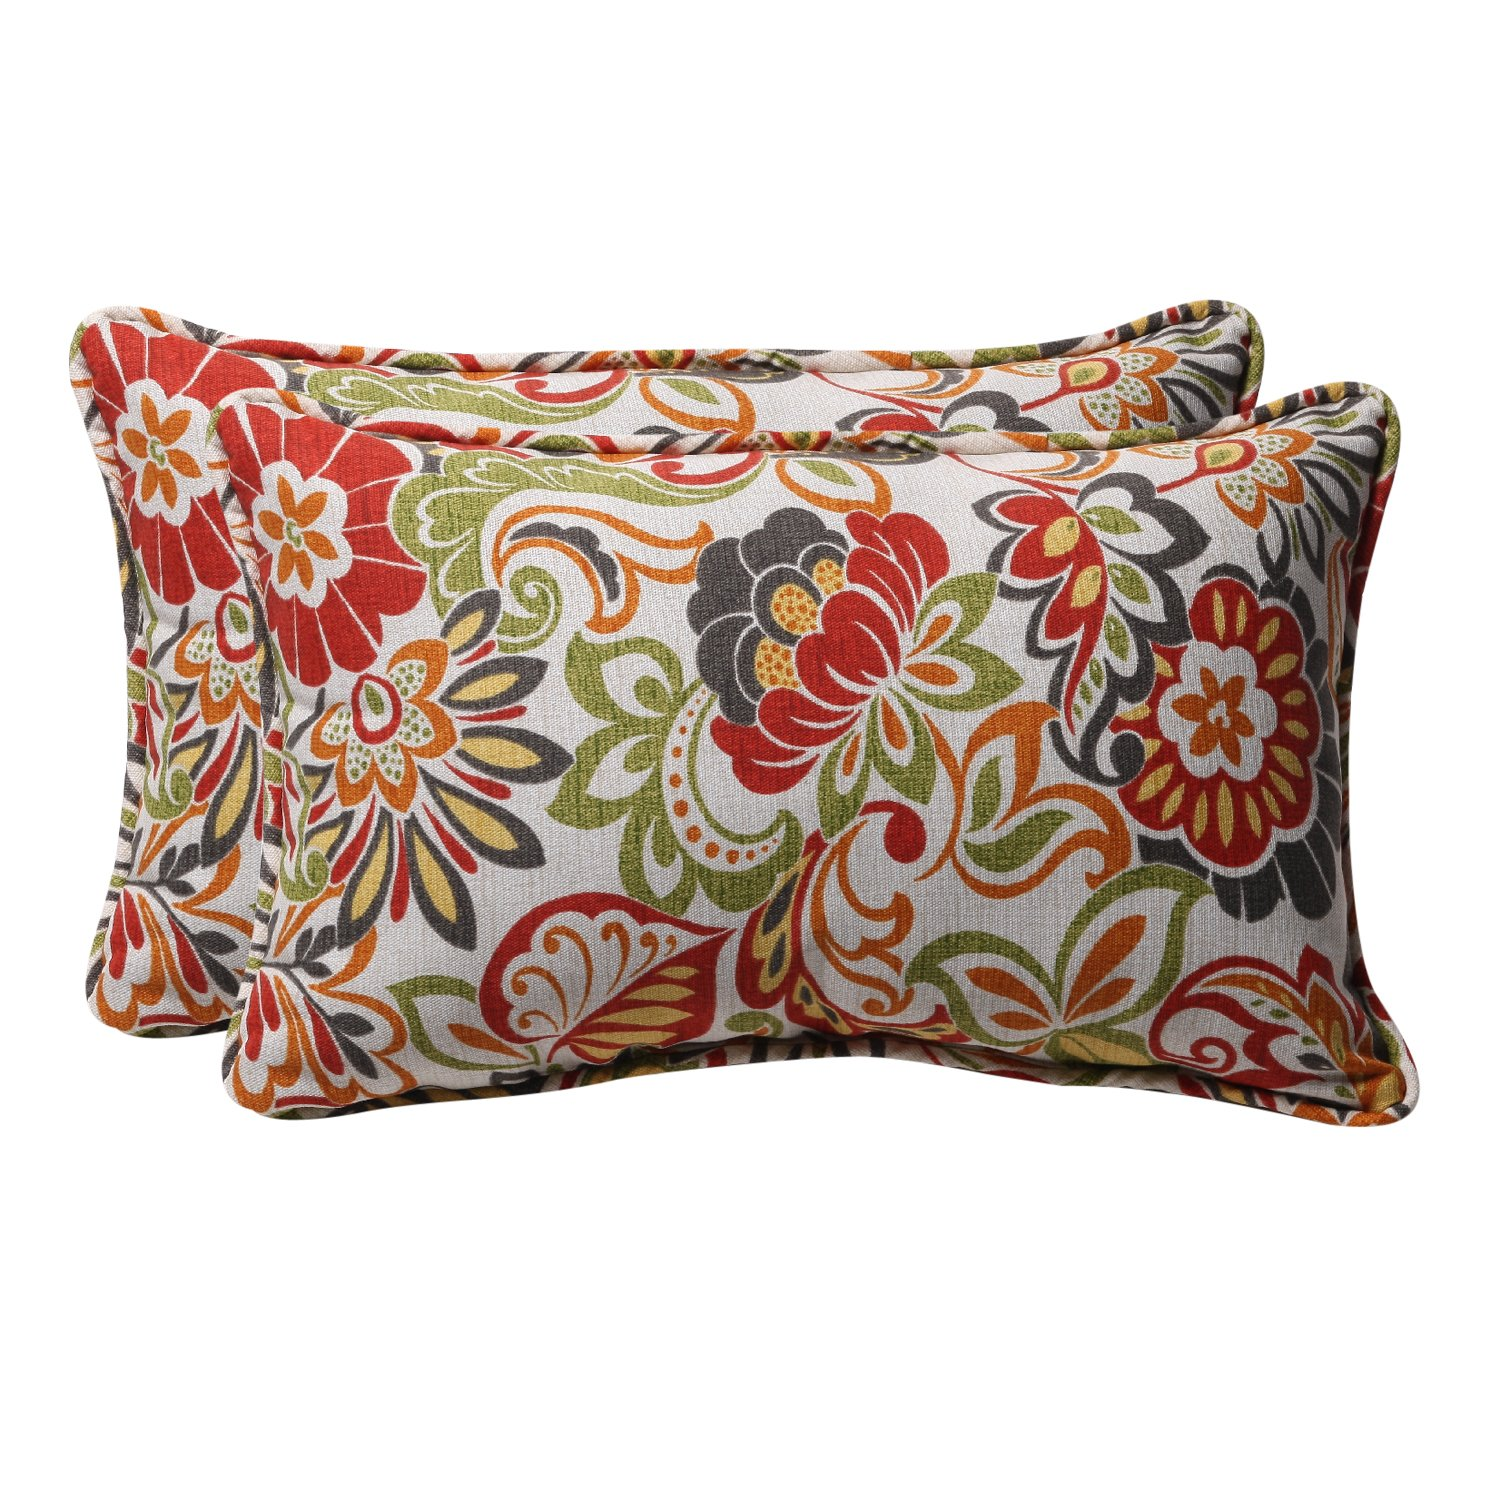 Pillow Perfect Decorative Multicolored Modern Floral Rectangle Toss Pillows, 2-Pack by Pillow Perfect